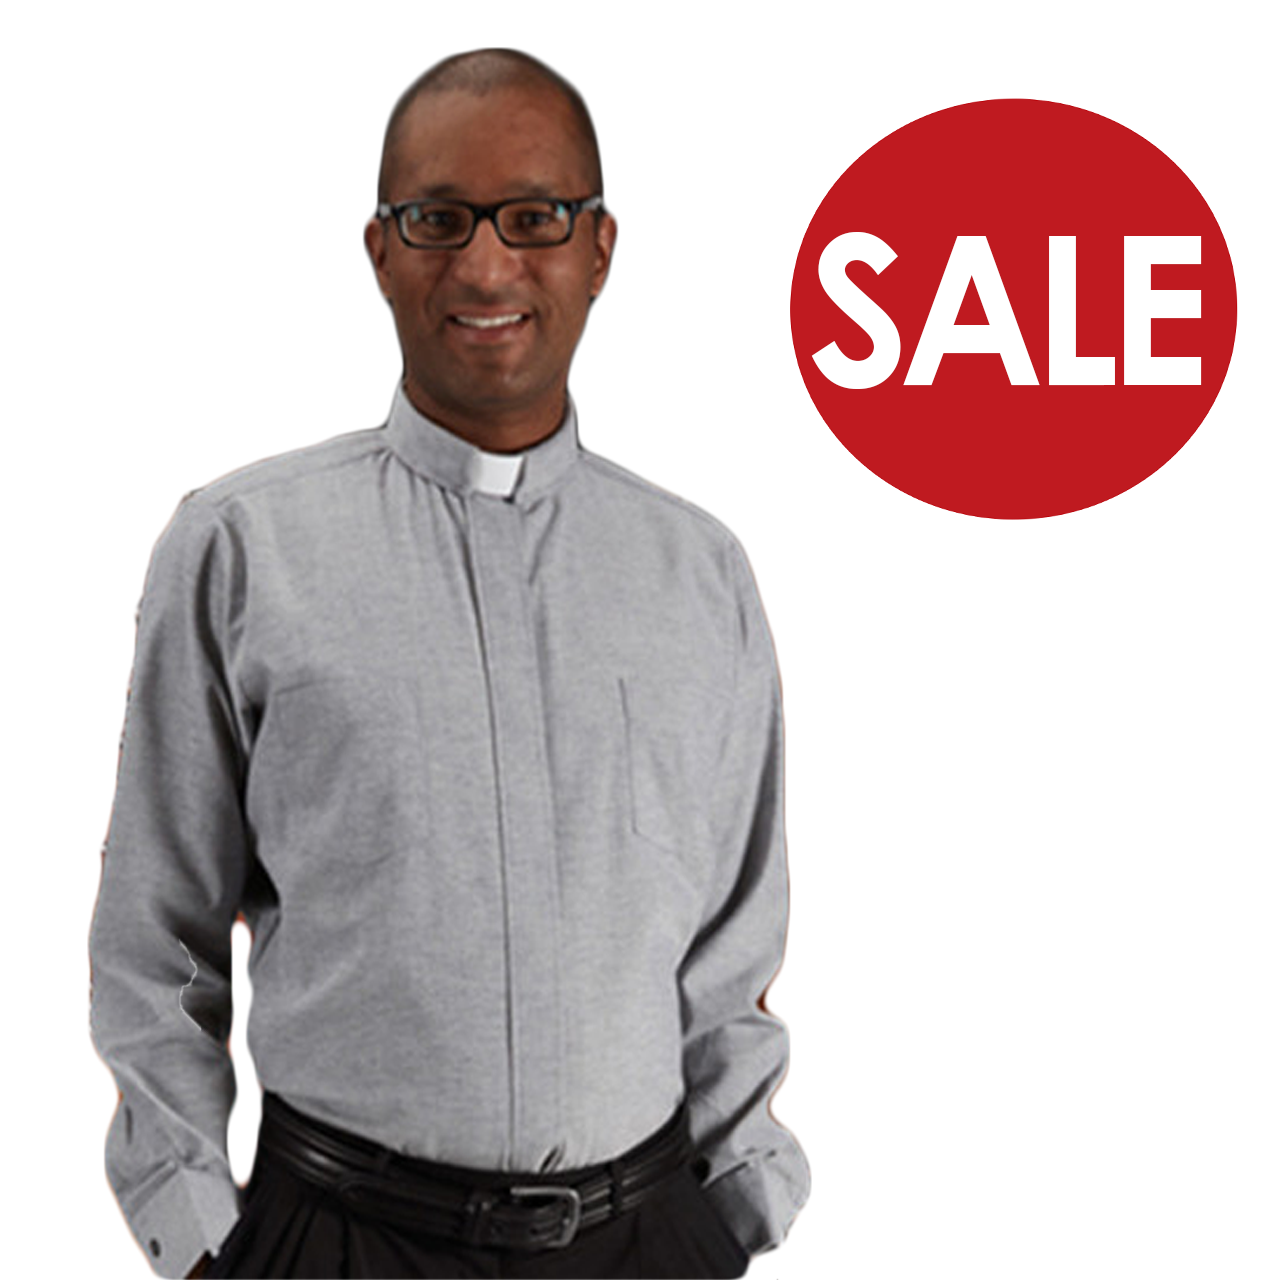 fa0f313595 Clearance Toomey Oxford Clergy Shirt with Tab Collar and Long Sleeves with  60 percent Cotton and